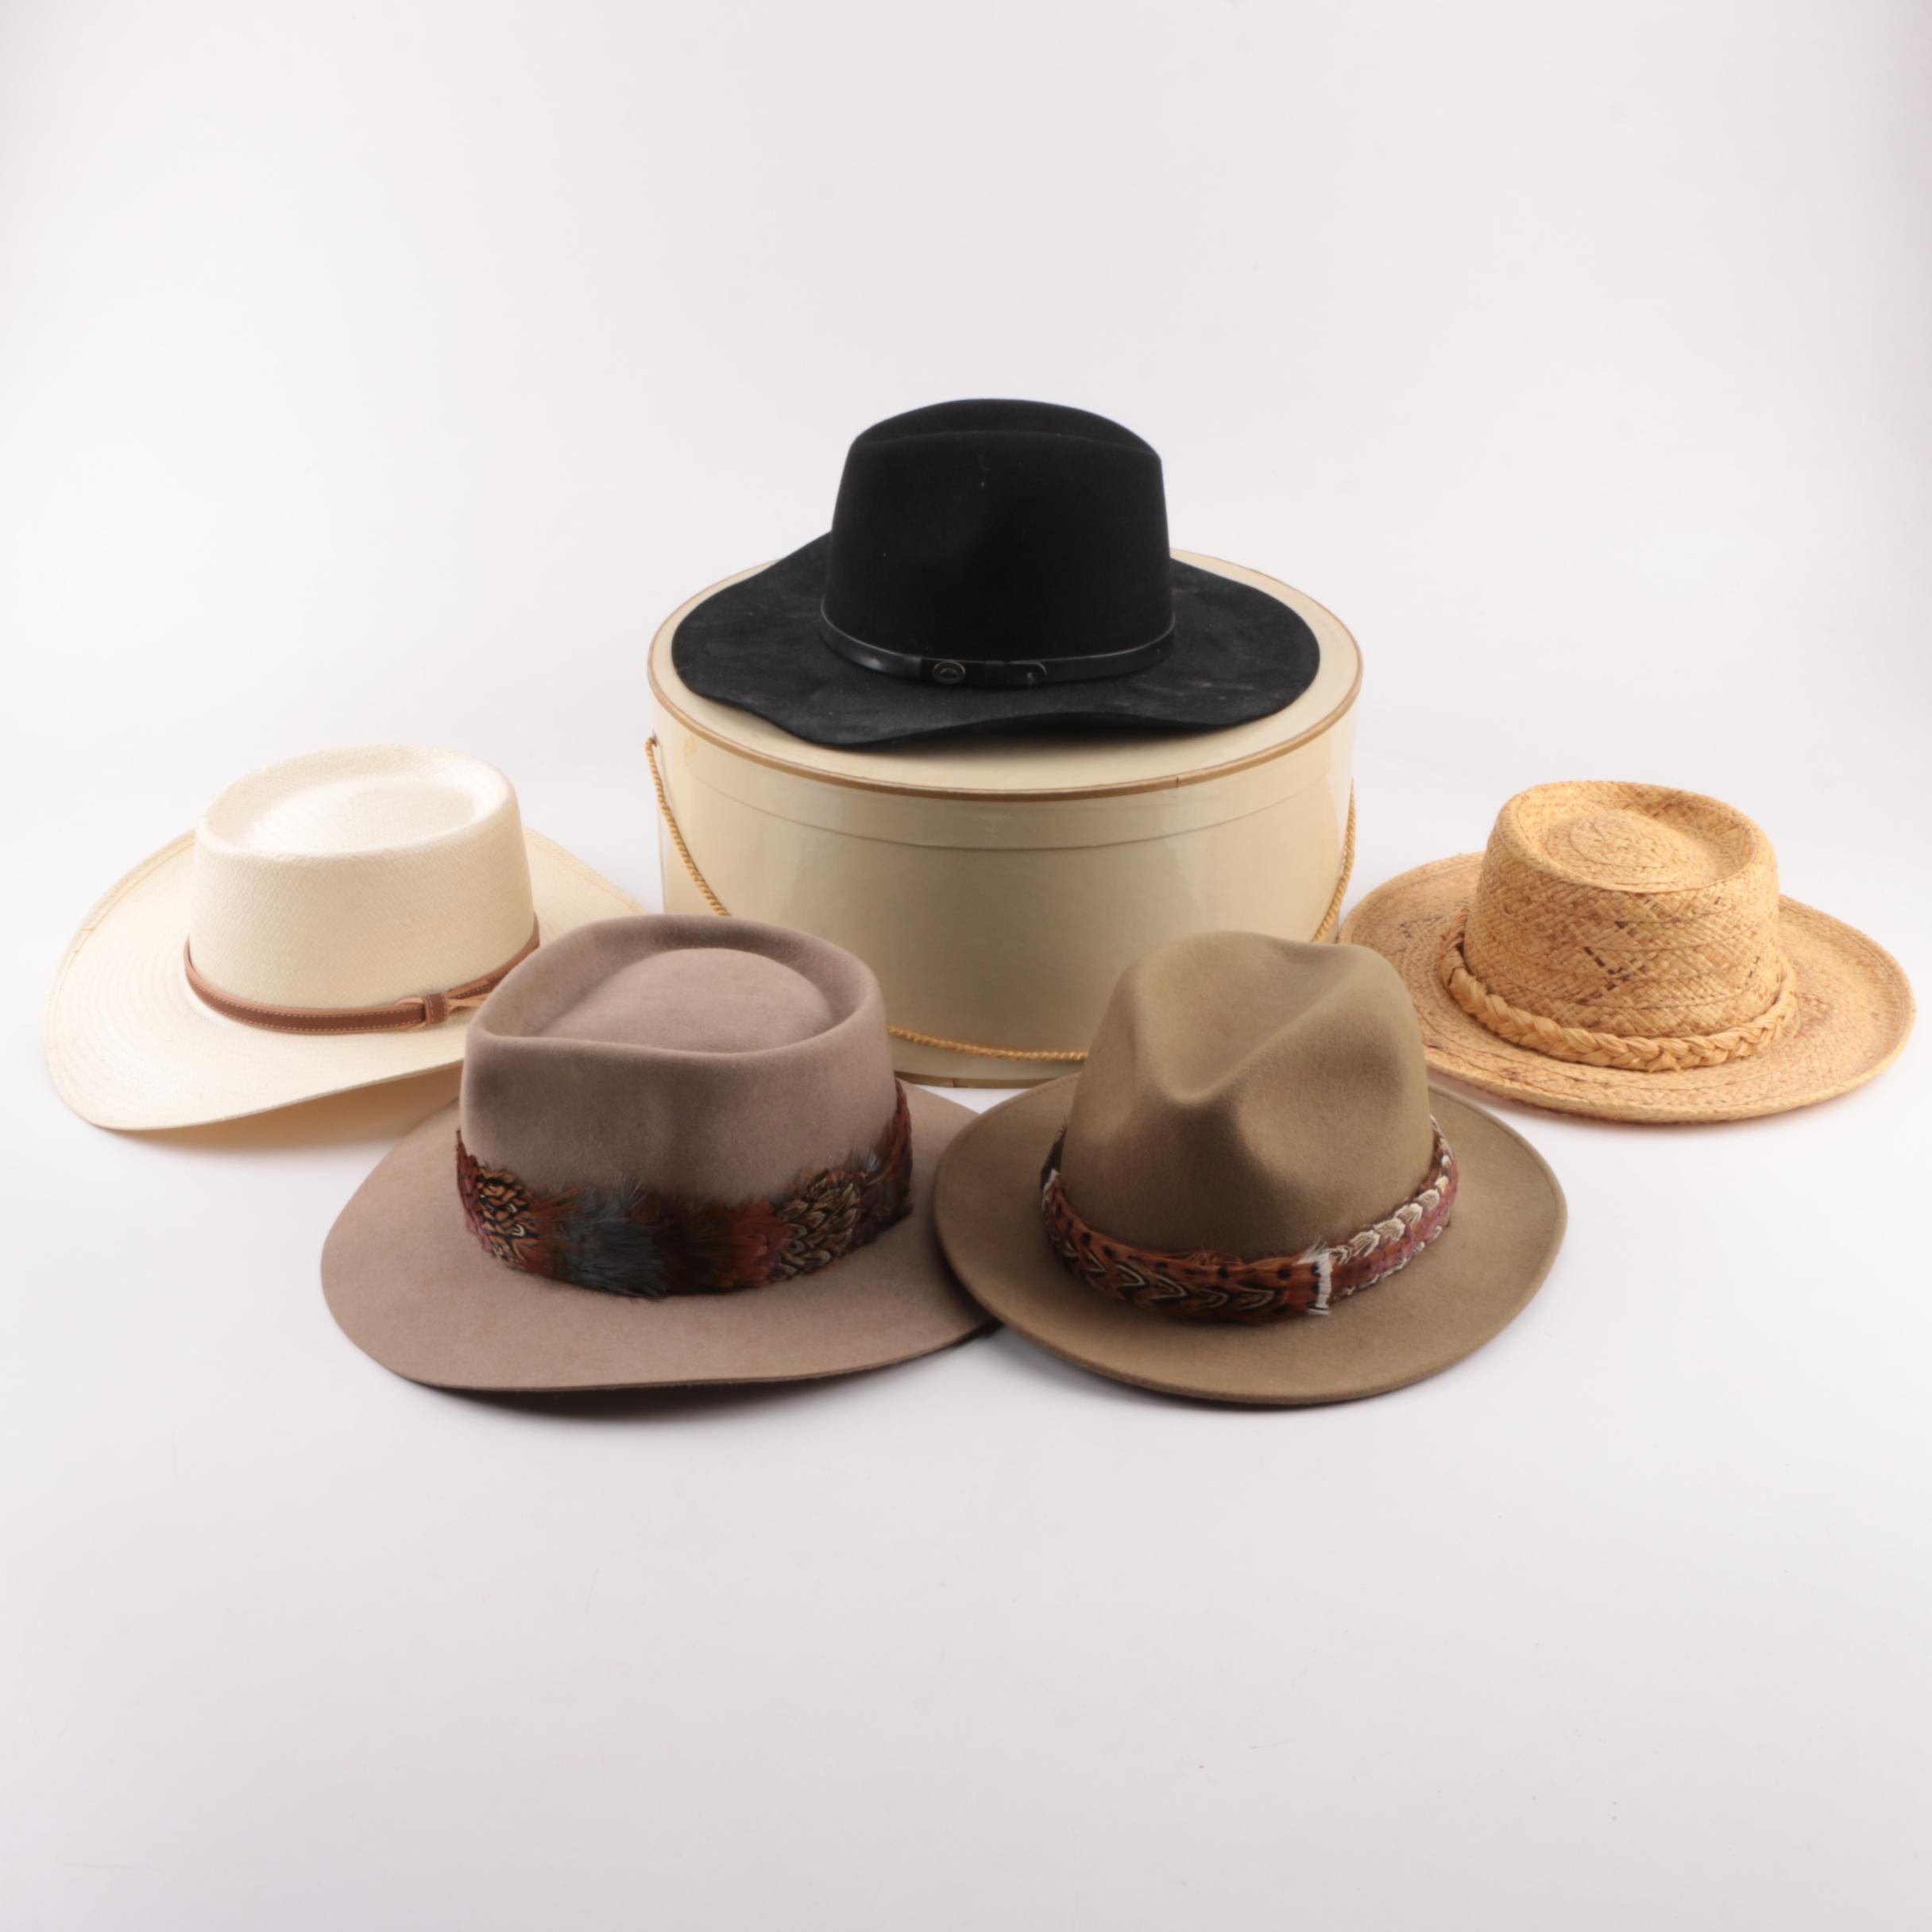 Men's Vintage Hats Including Orvis and Silver Canyon